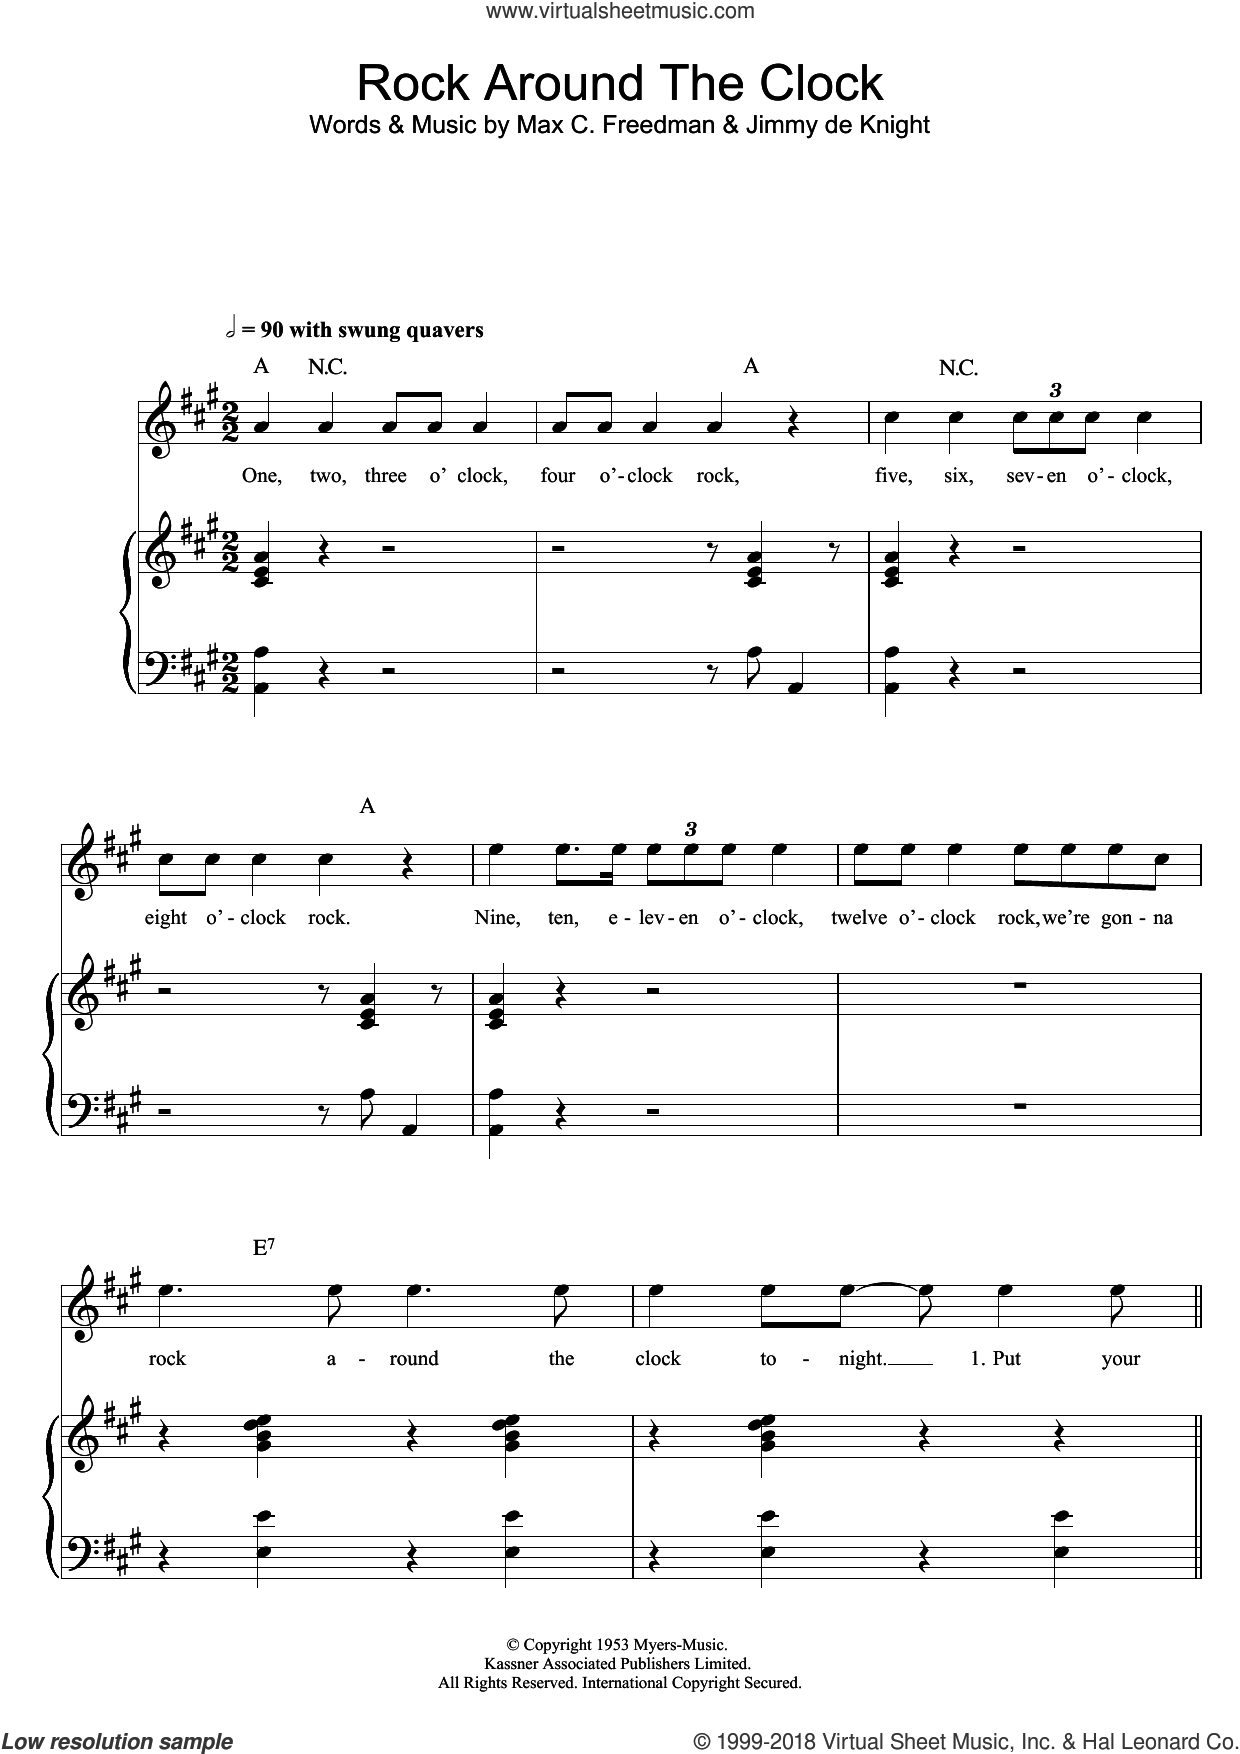 Rock Around The Clock sheet music for voice, piano or guitar by Bill Haley & His Comets, Jimmy De Knight and Max C. Freedman, intermediate skill level